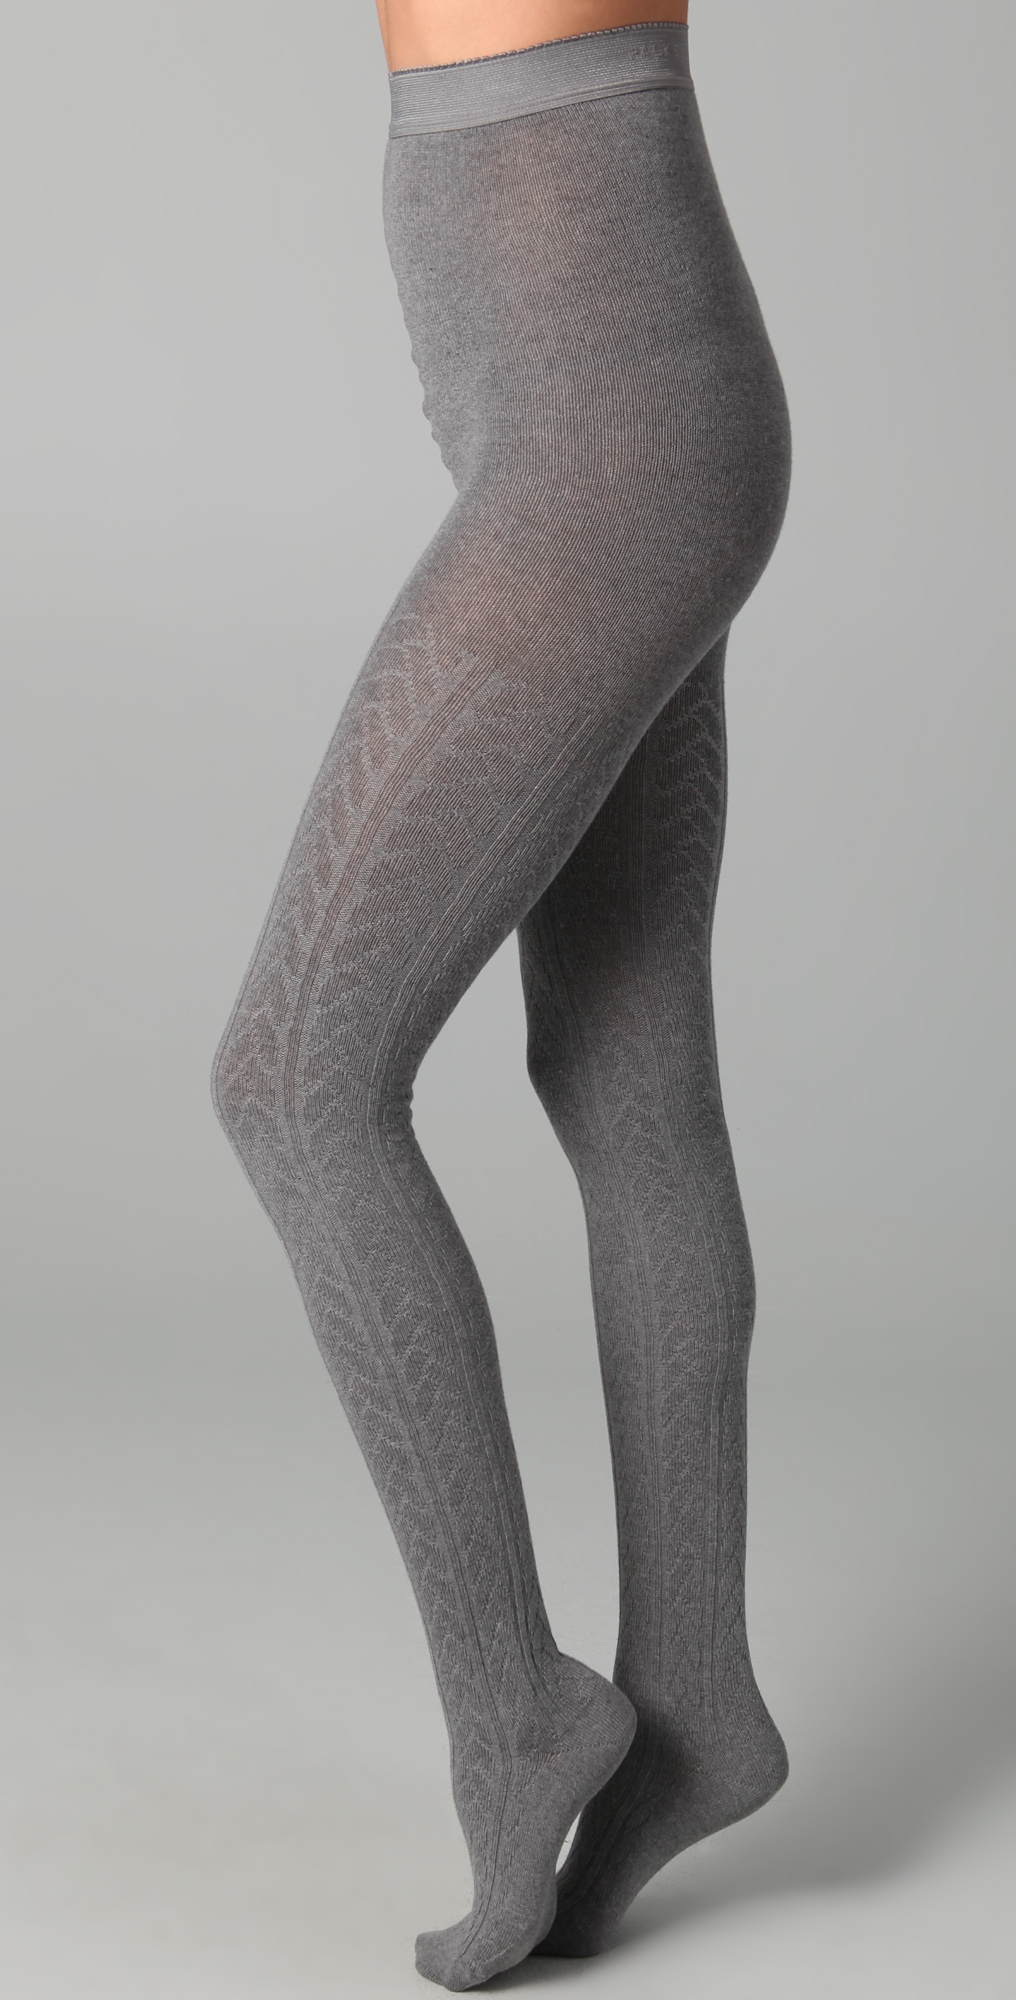 Cable Knit Tights - The BodyProud Initiative